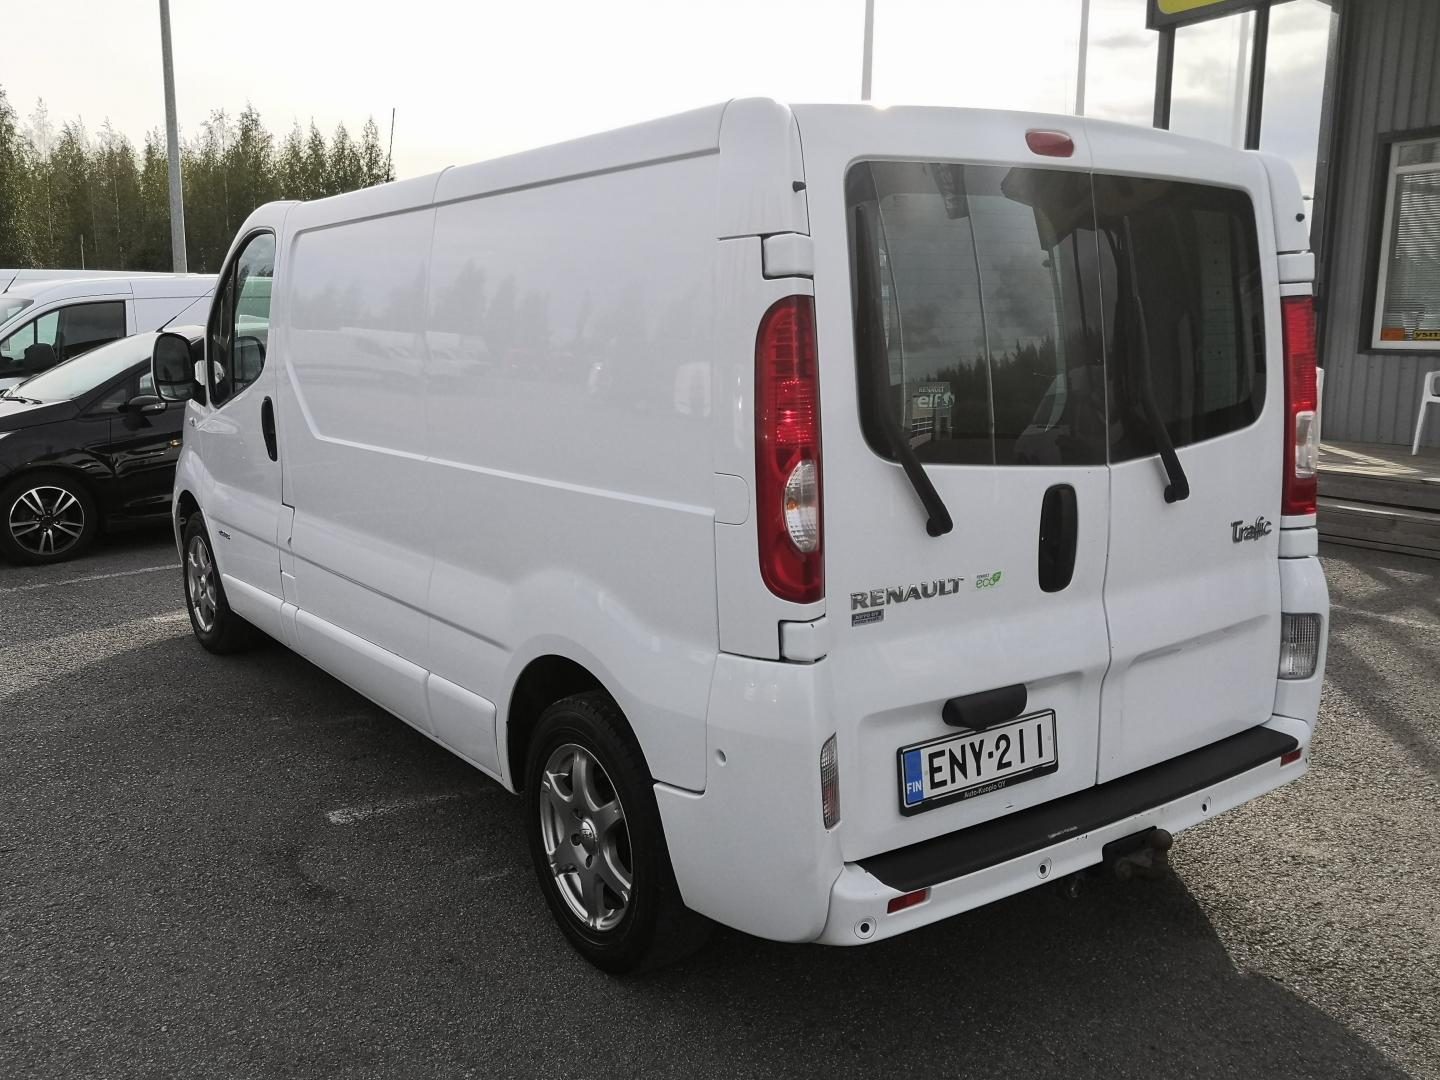 Renault Trafic, 2.0 dCi